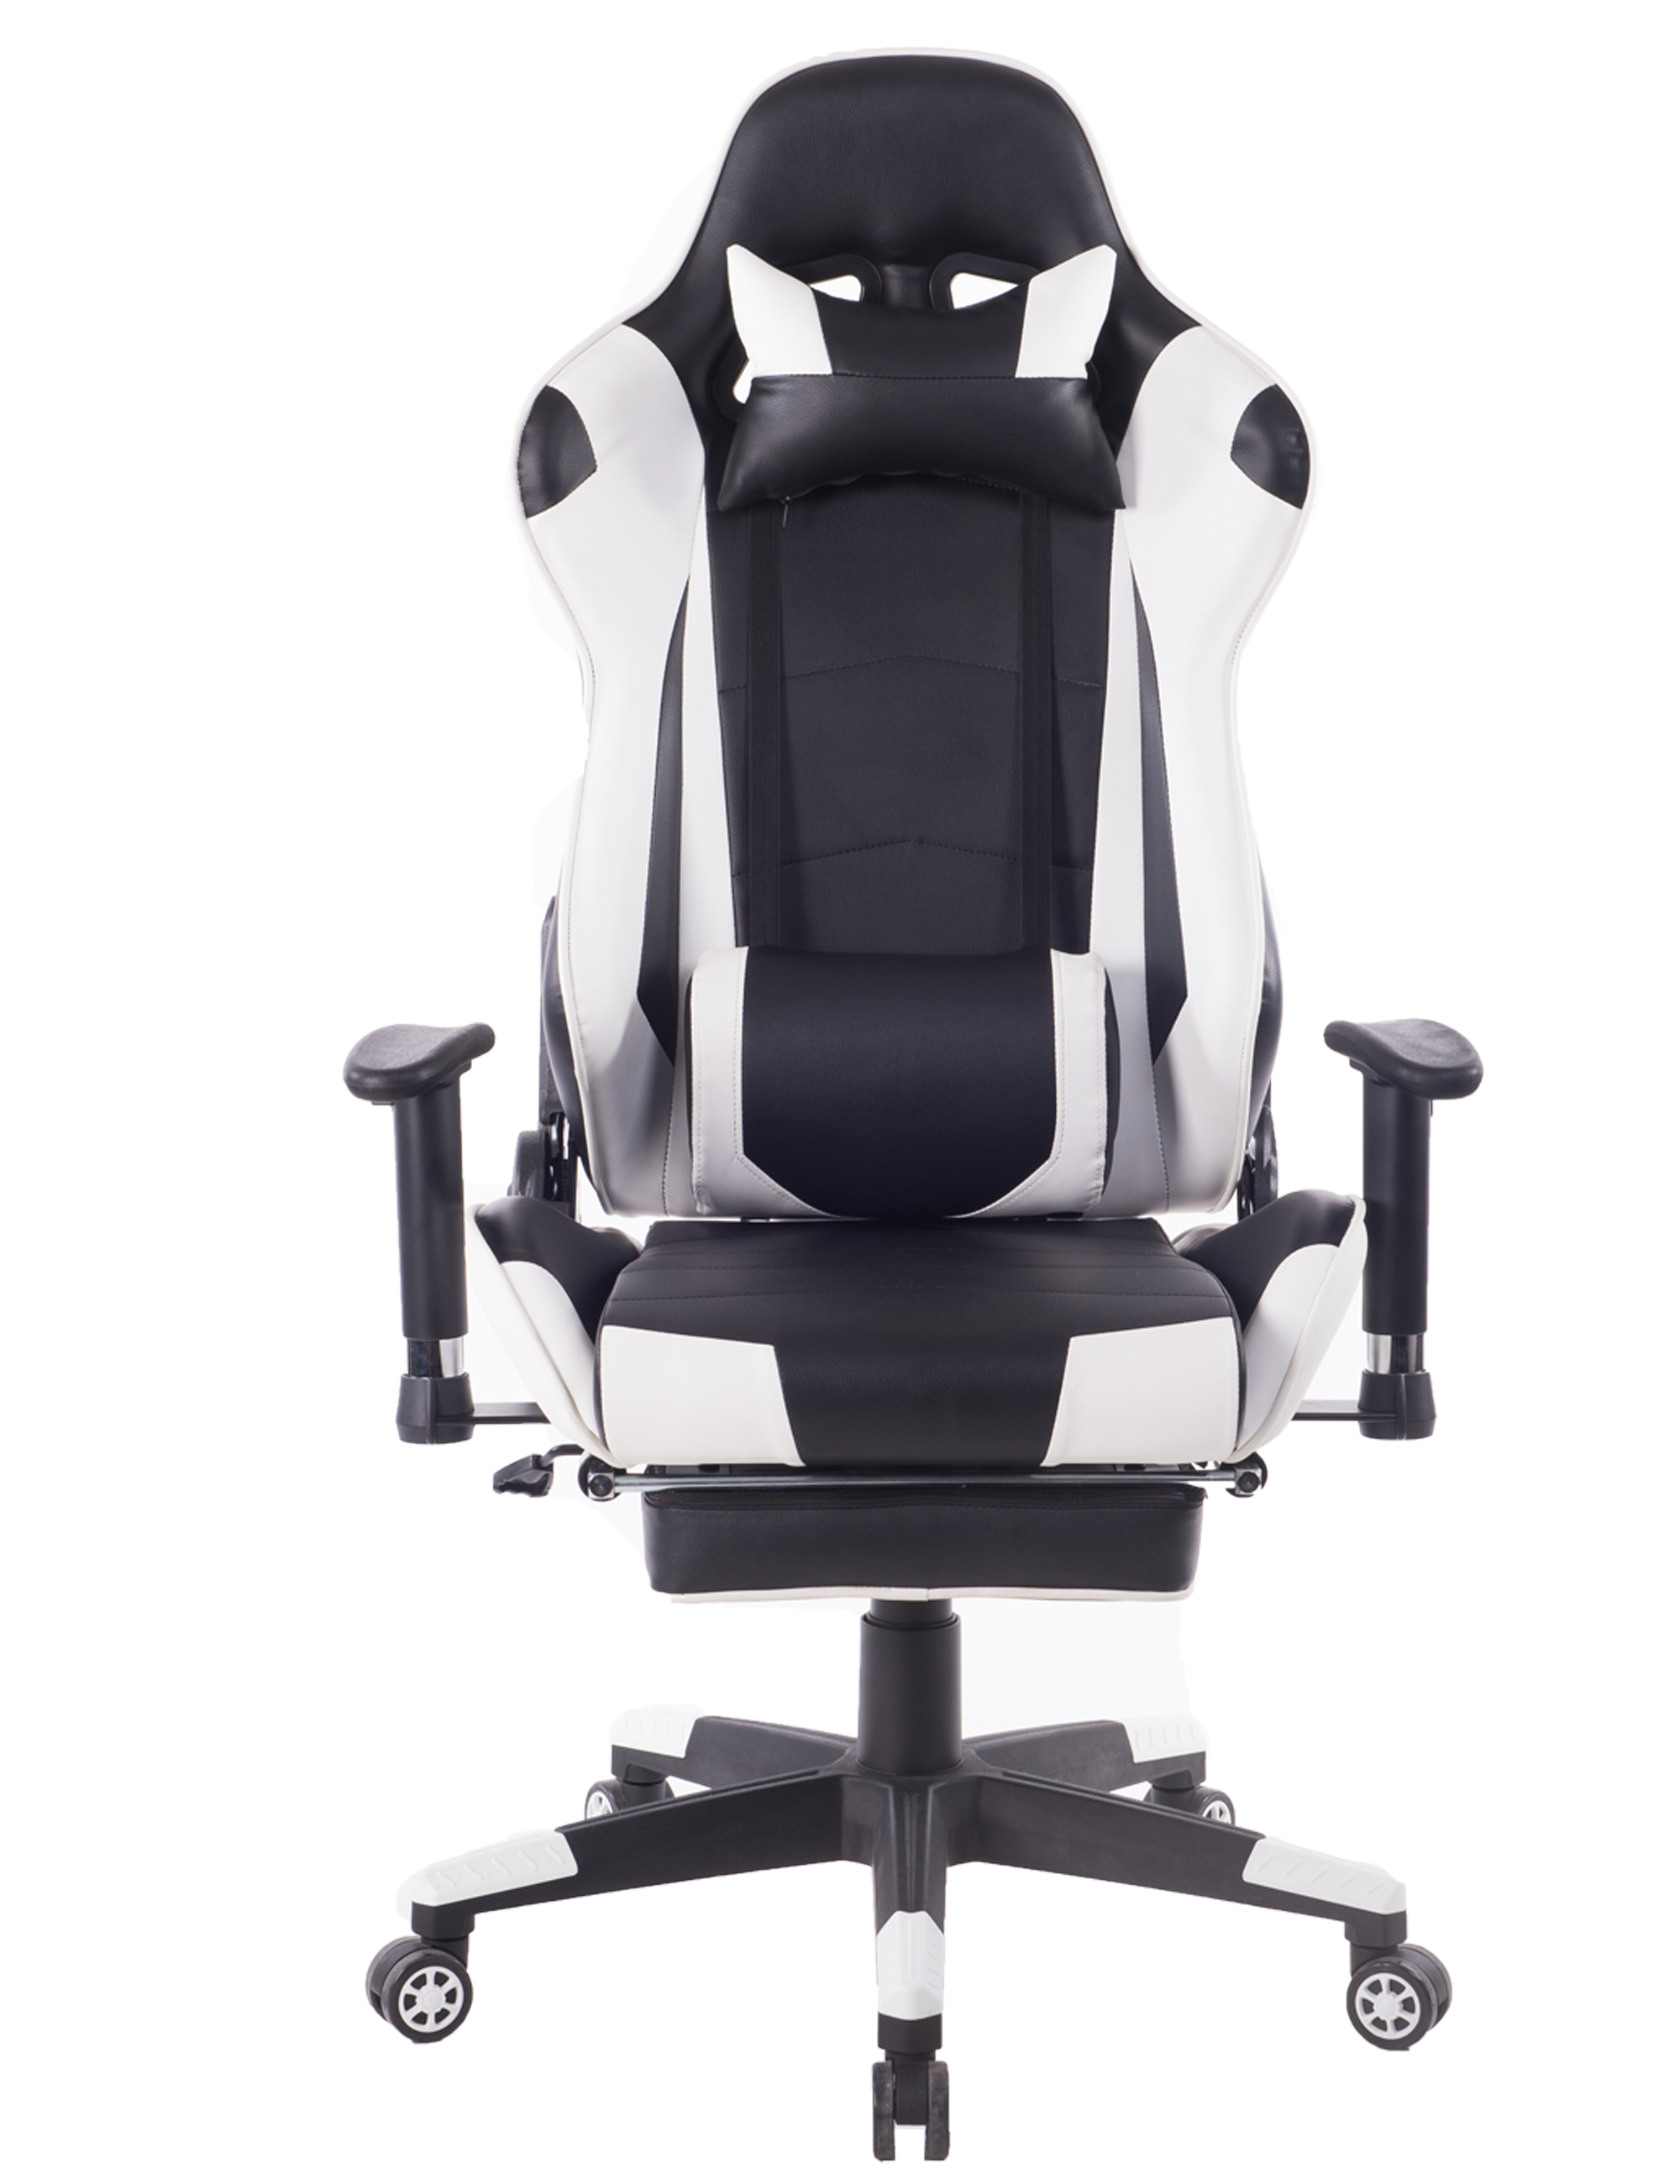 Killbee Ergonomic Reclining Swivel Gaming Chair Large Size PVC Leather Executive Office Chair with Headrest Lumbar  sc 1 st  Walmart & Killbee Ergonomic Reclining Swivel Gaming Chair Large Size PVC ...